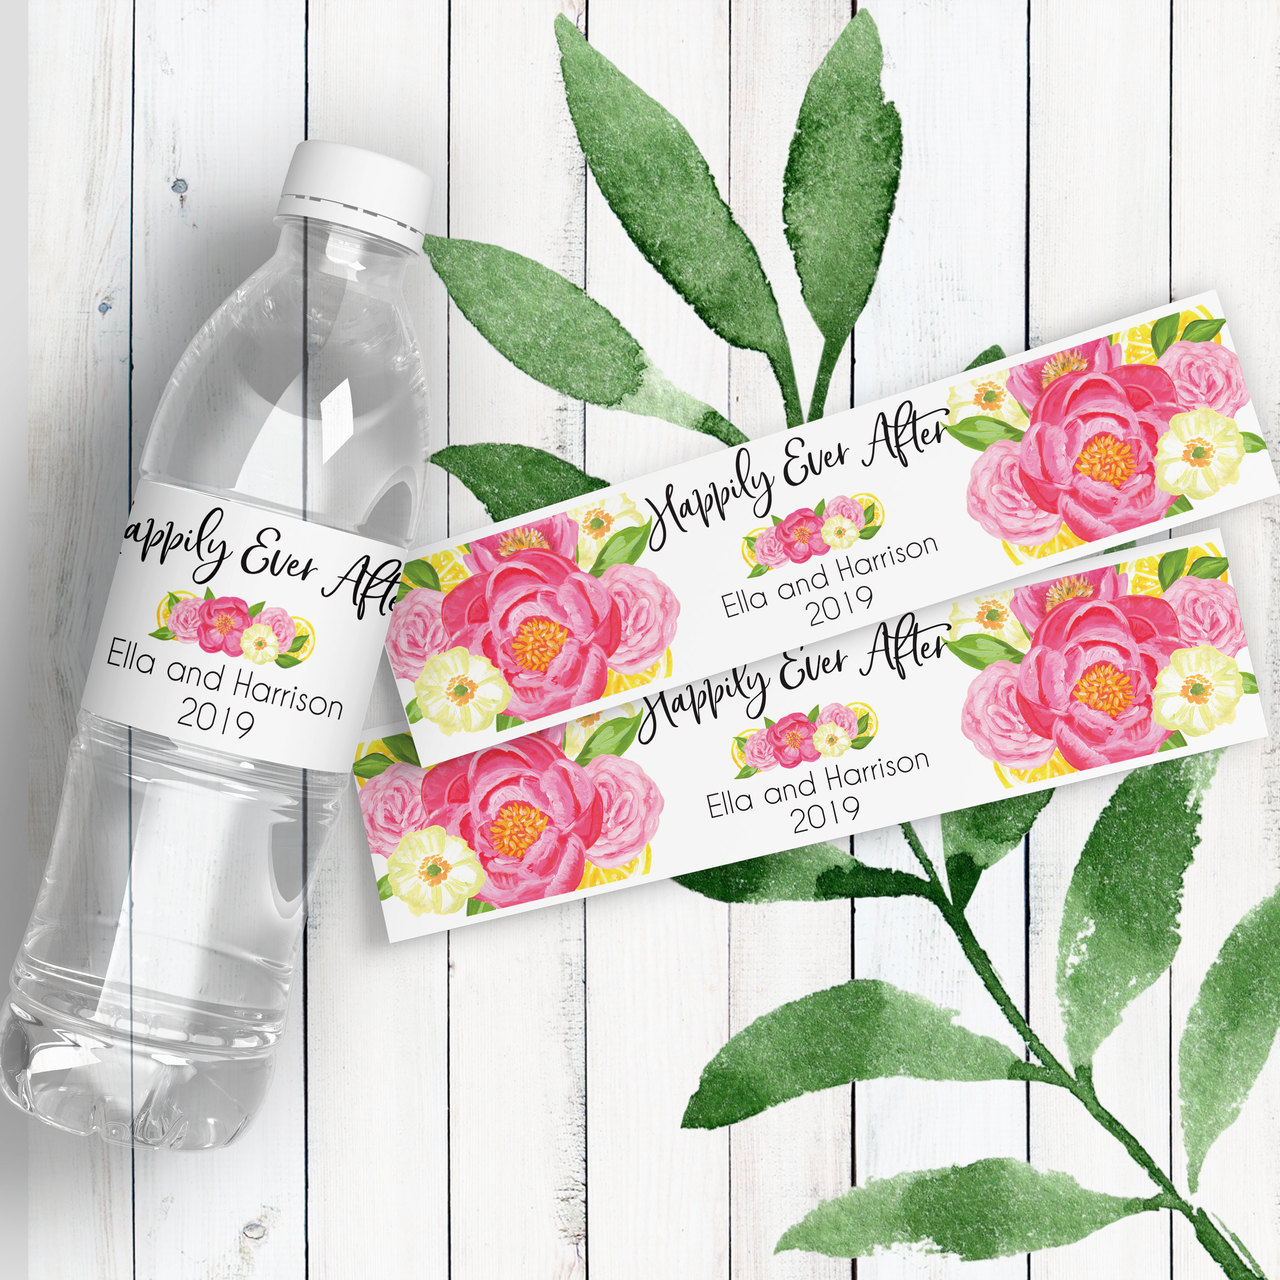 Wedding Water Bottle Labels.Personalized Wedding Water Bottle Labels Summer Breeze